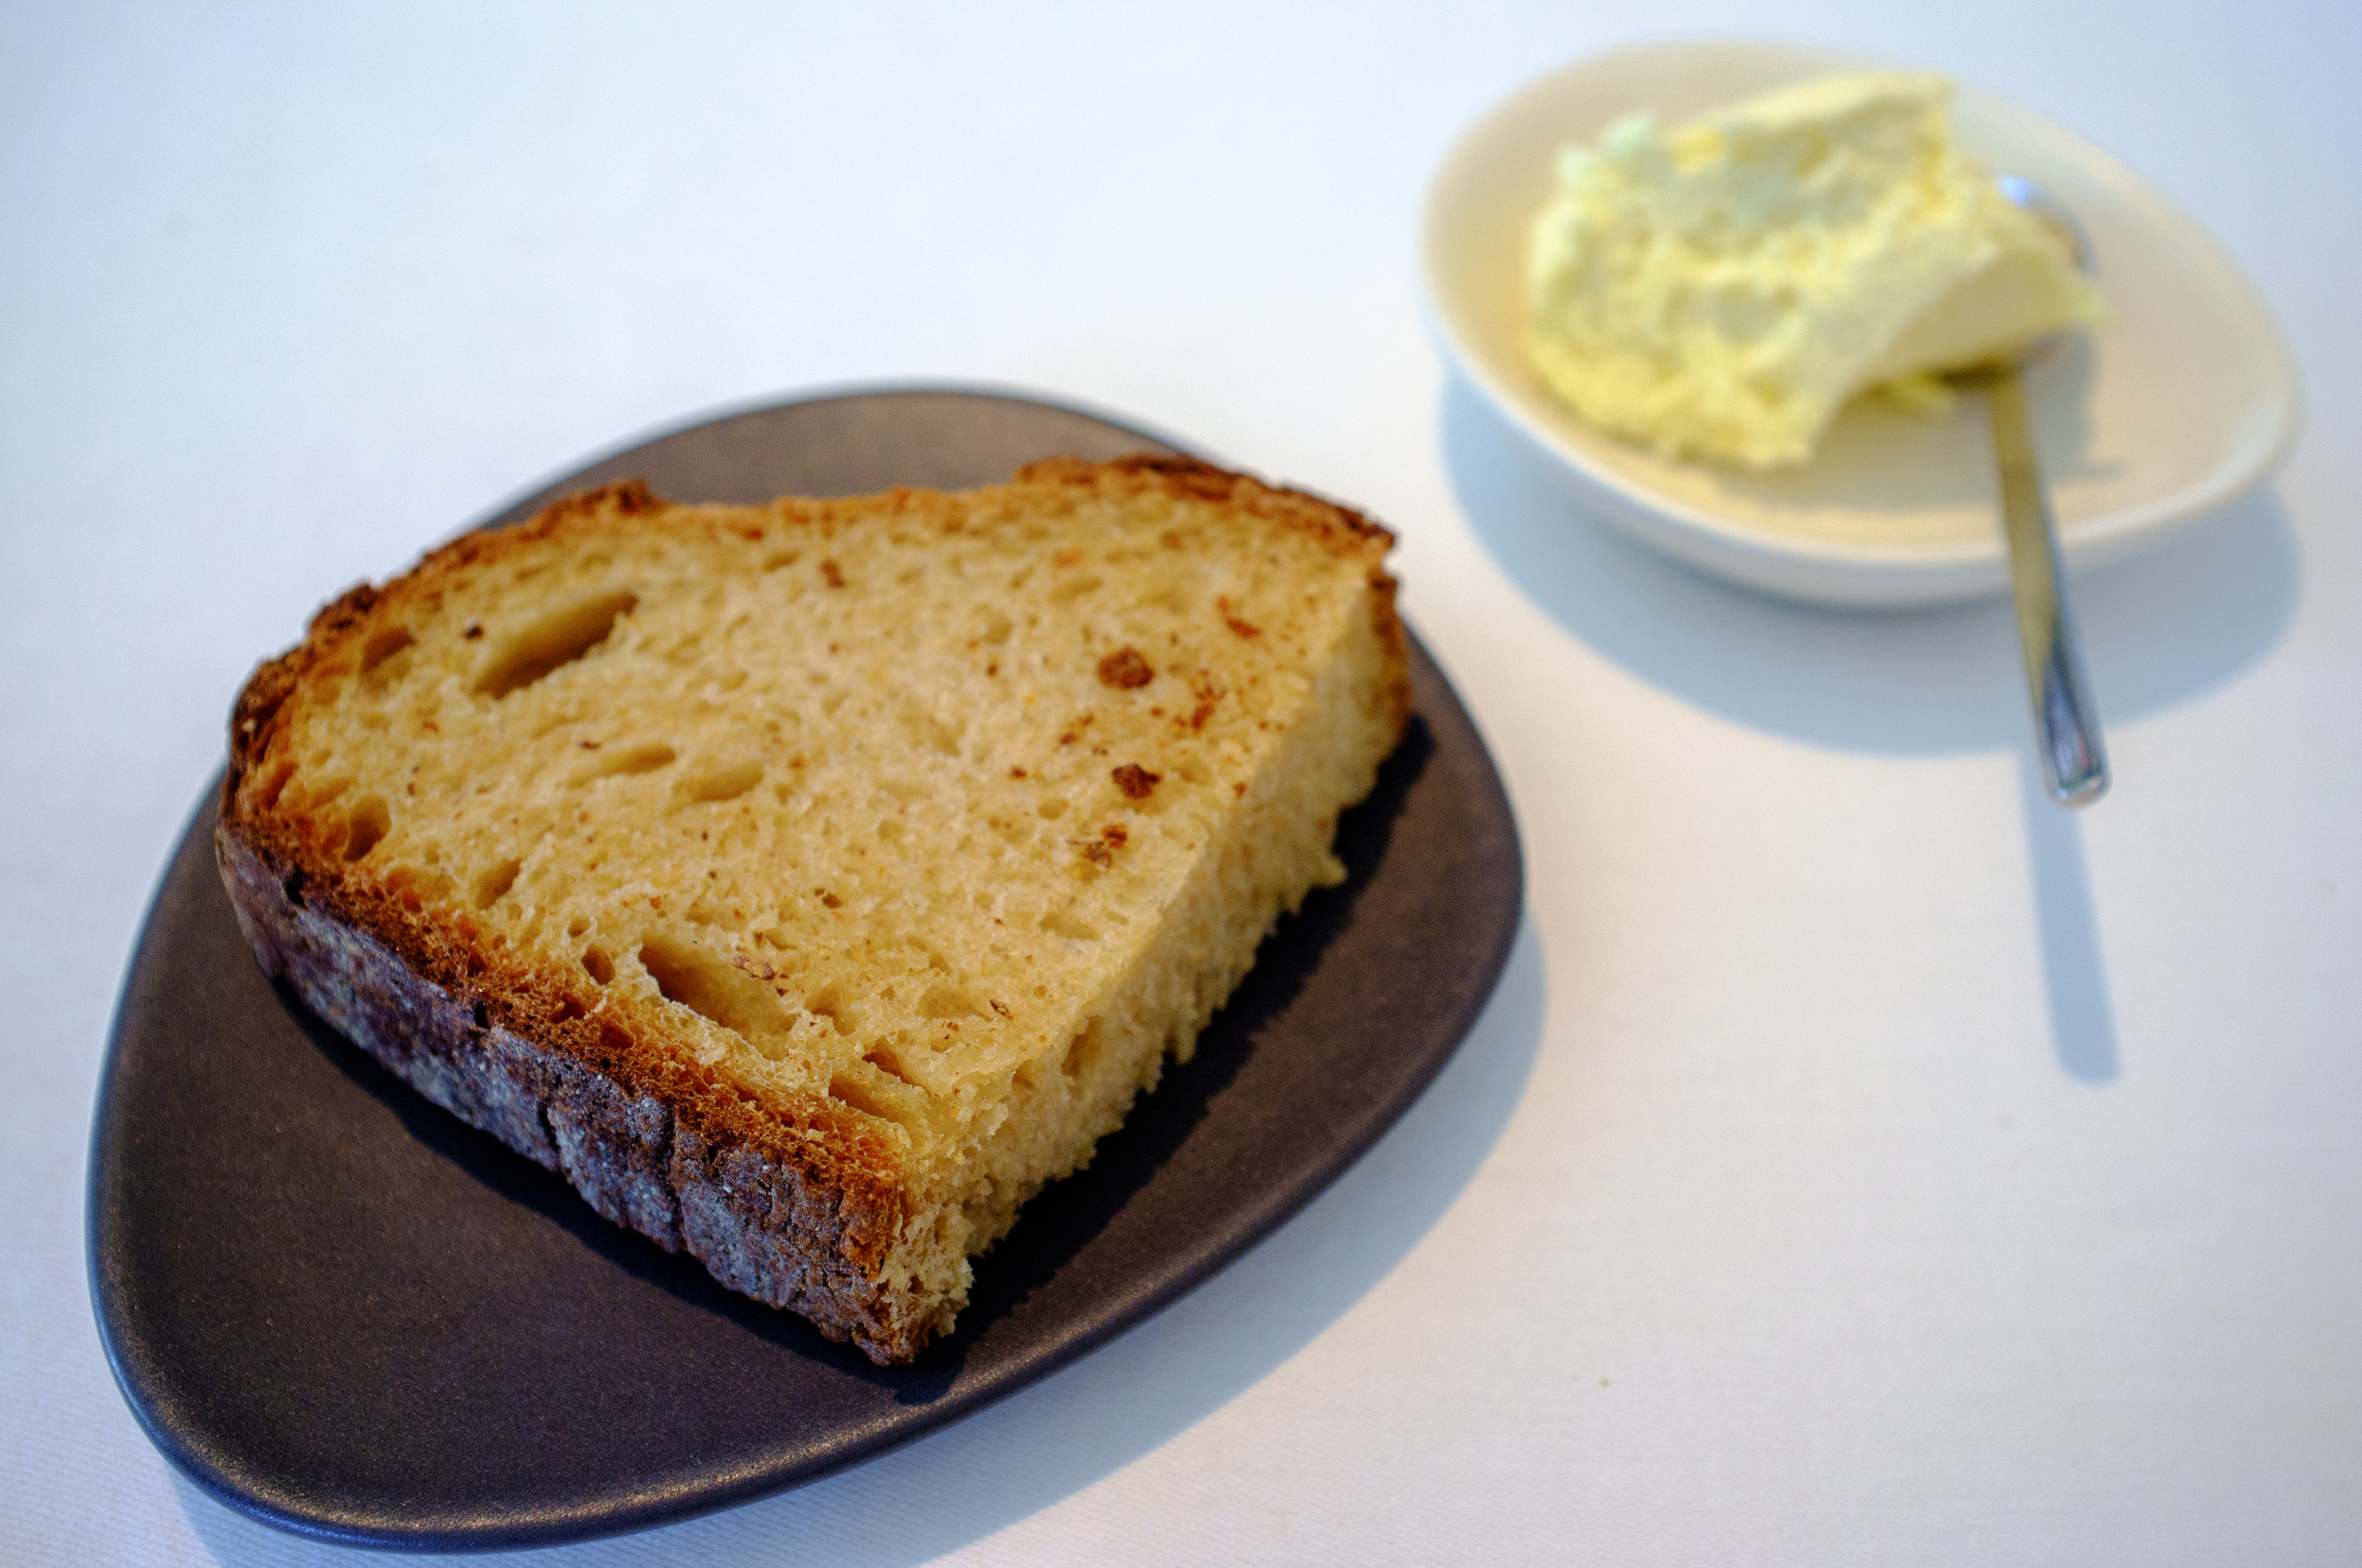 Sourdough bread with lightly churned Jersey butter